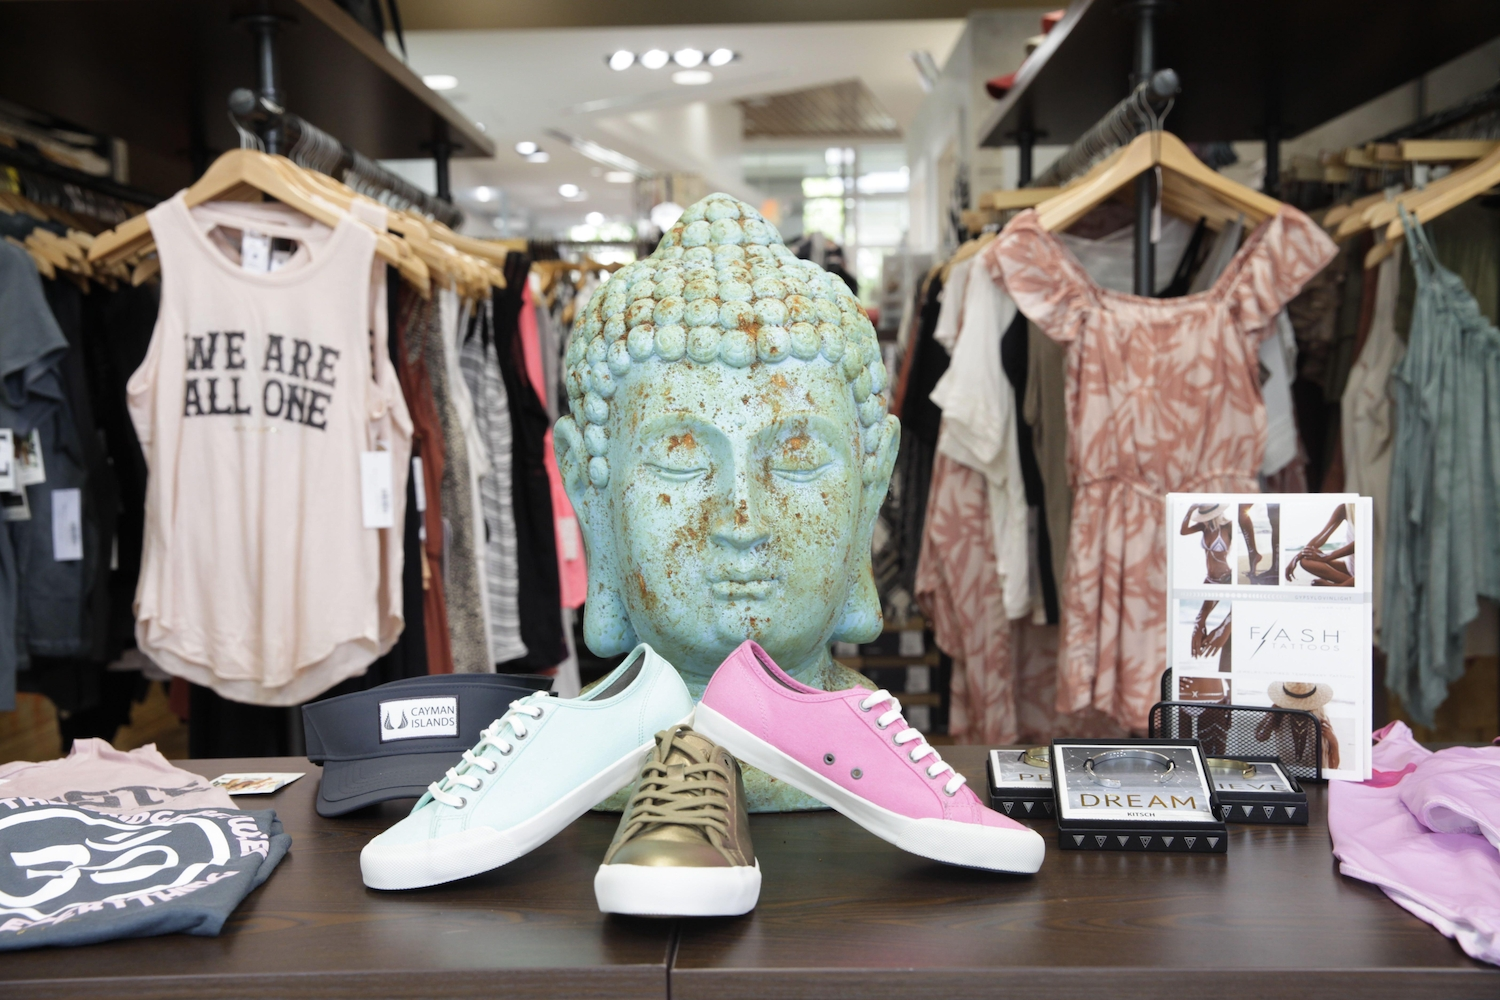 Front window display of shoes and tanks with an ornamental buddah head in the centre